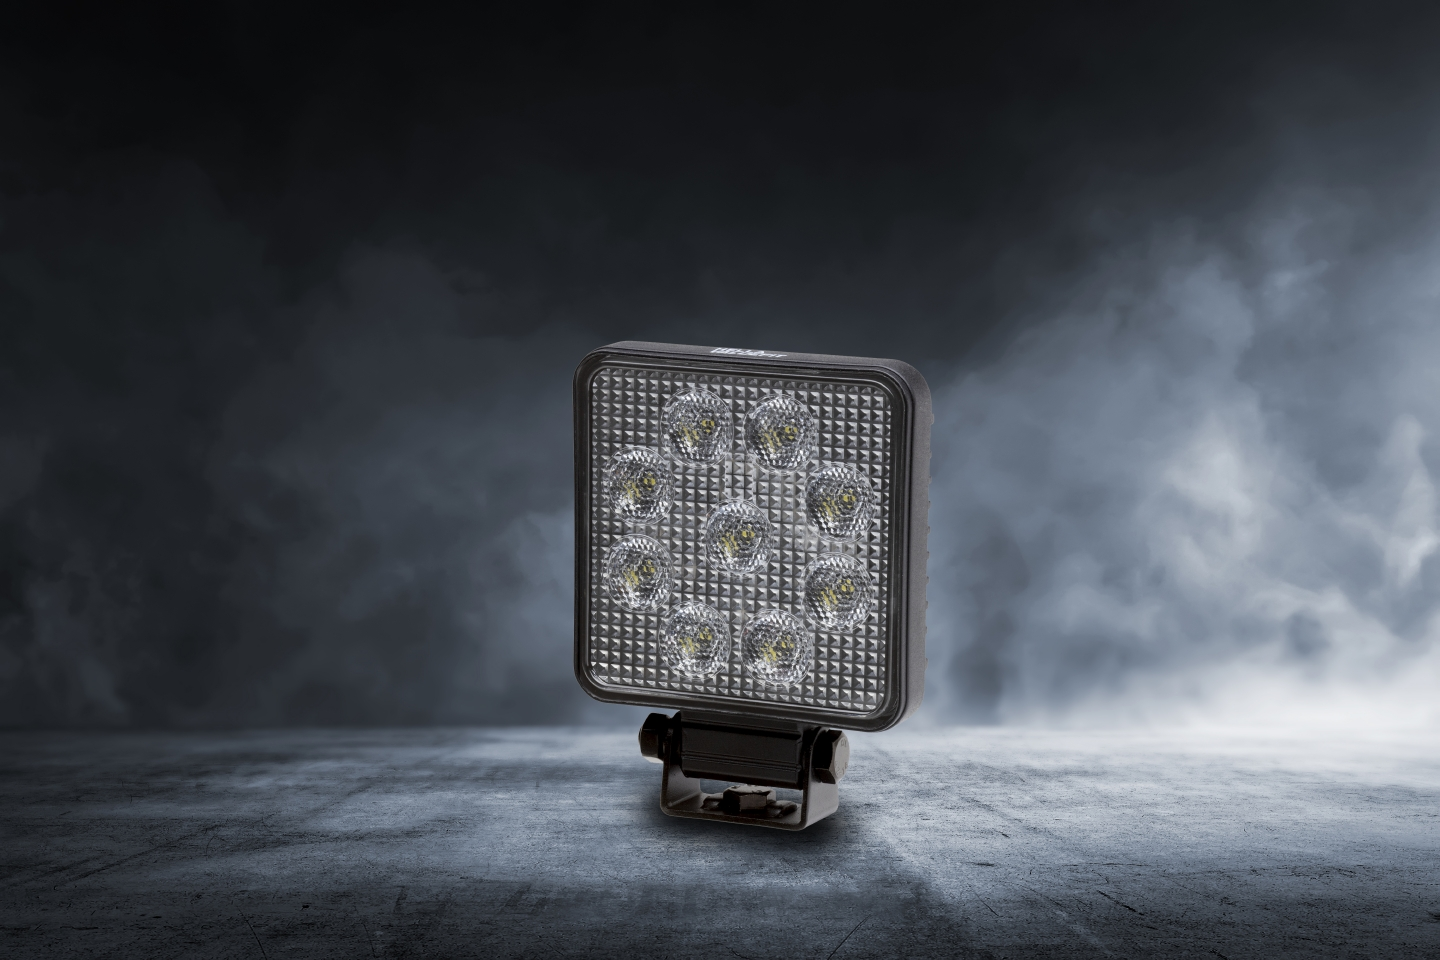 Hella launches first work lamp with plastic housing